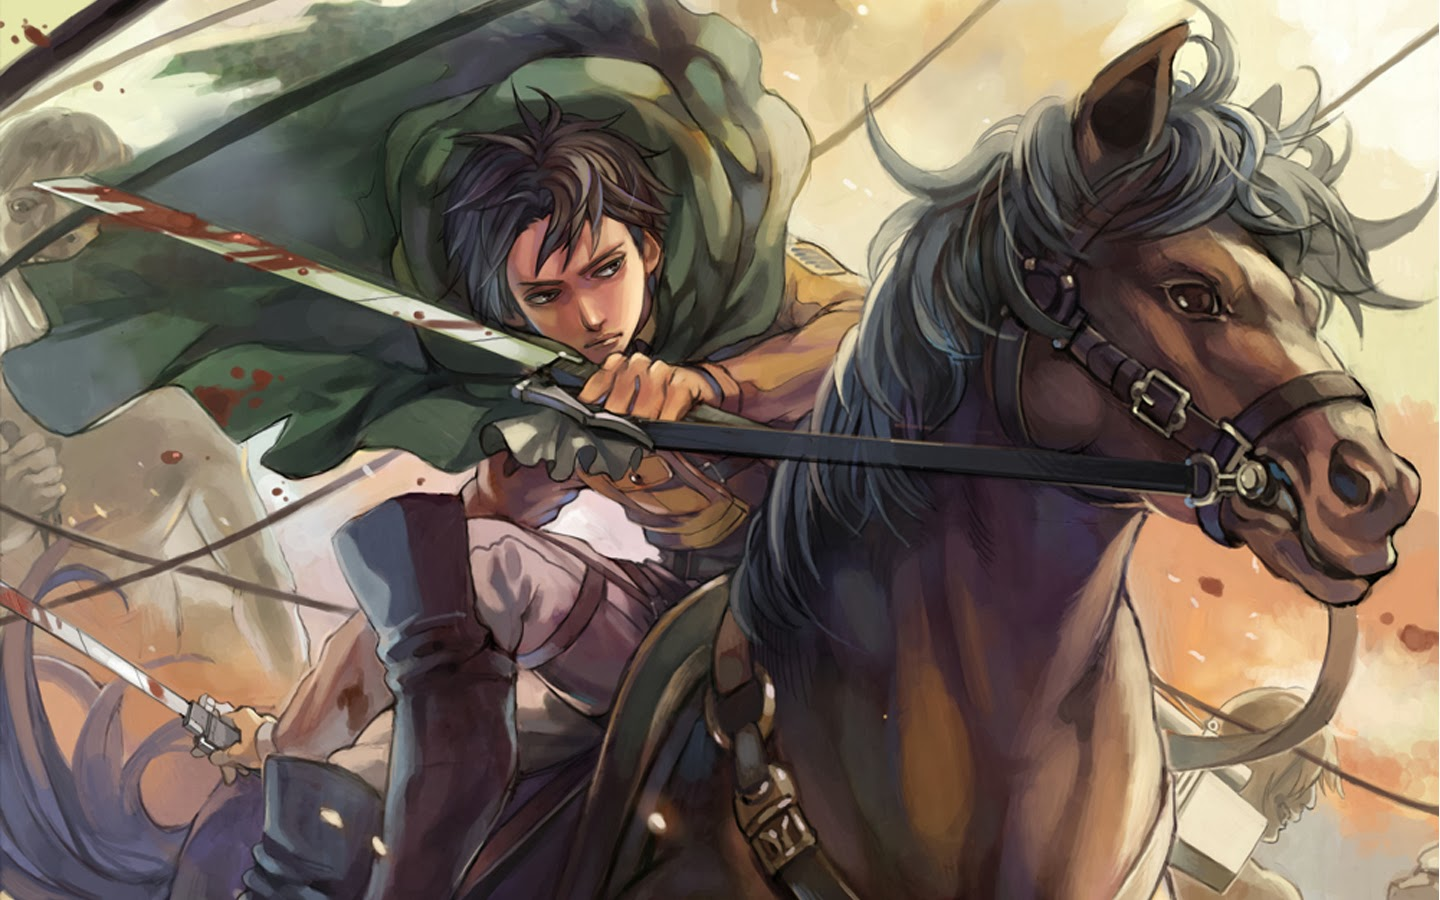 horse riding titan attack on titan shingeki no kyojin hd wallpaper 1440x900